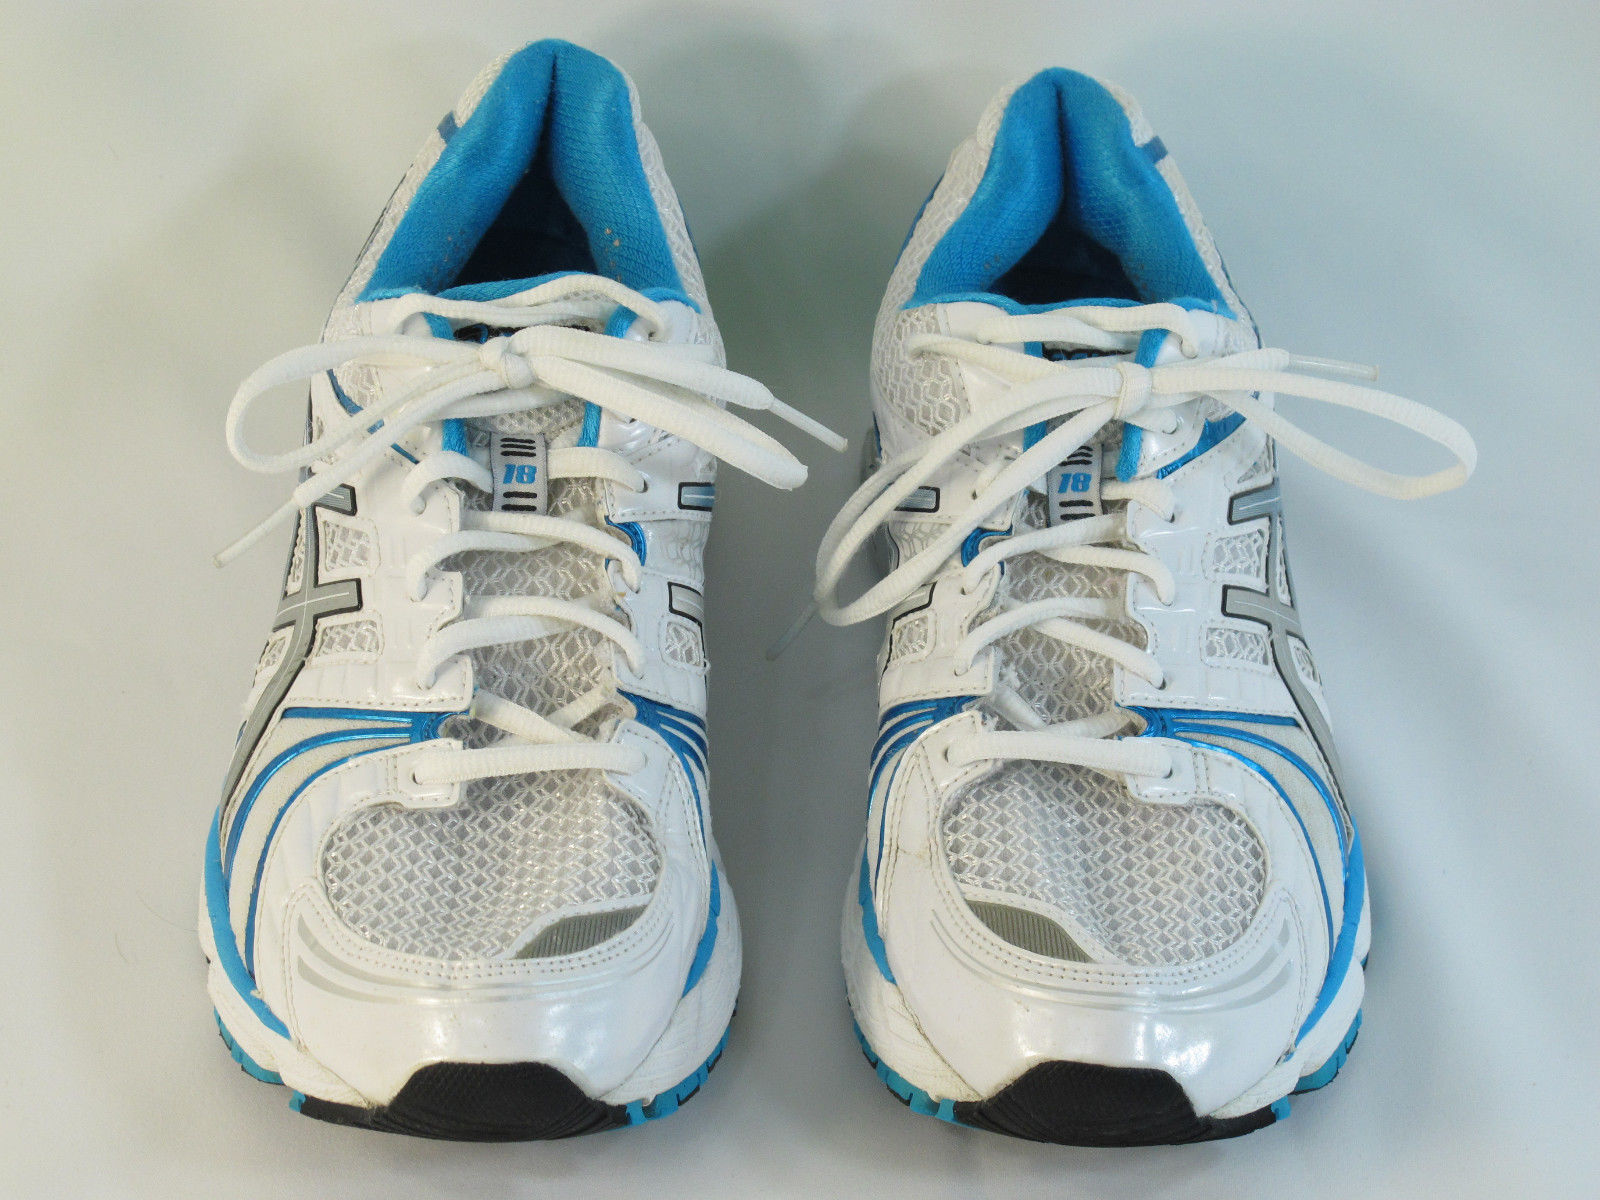 ASICS Gel Kayano 18 Running Shoes Women's and 50 similar items